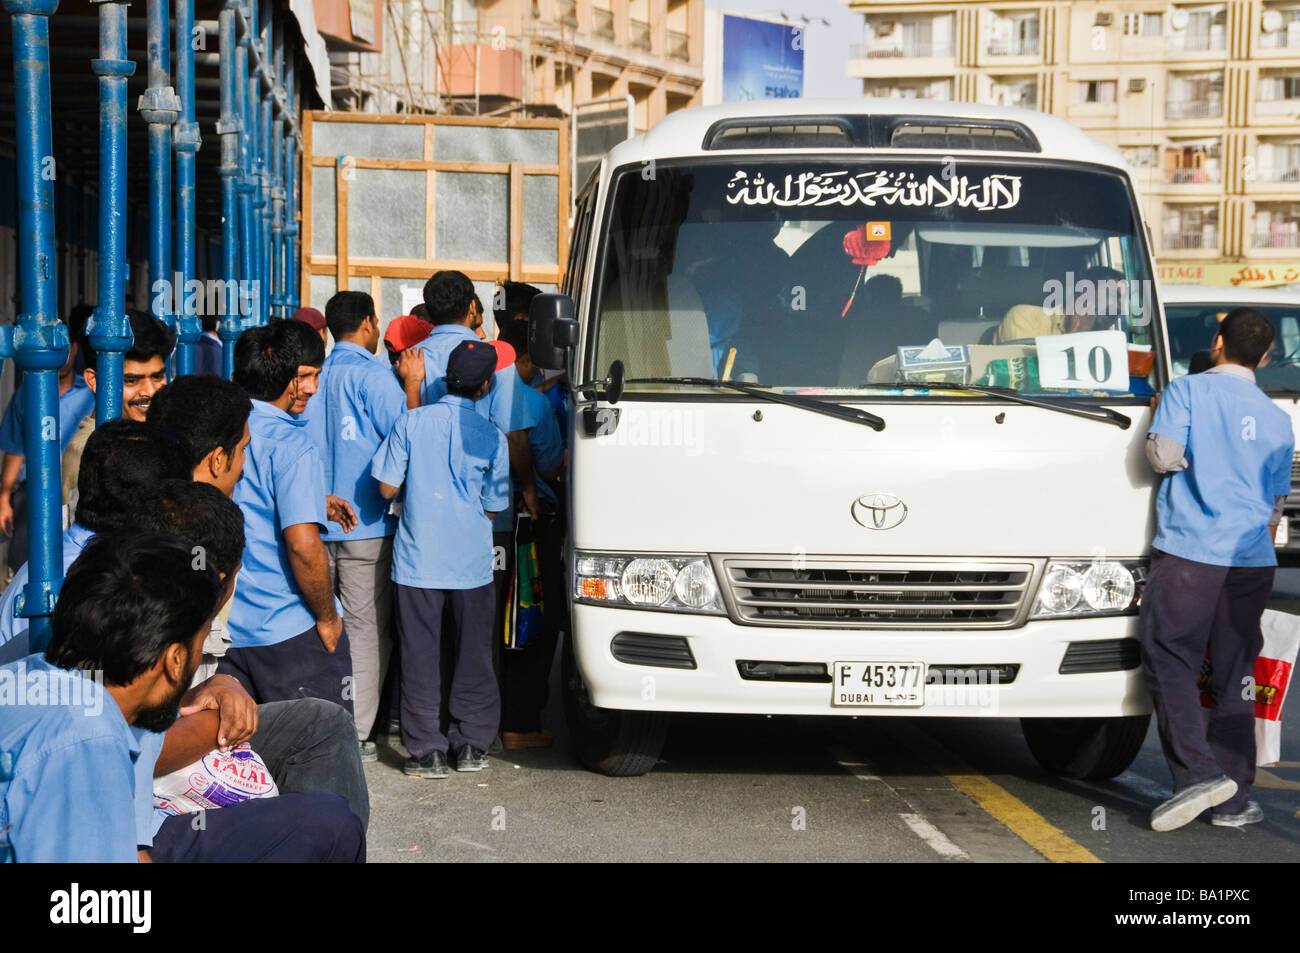 Foreign workers getting on a bus after a day of work Dubai UAE - Stock Image